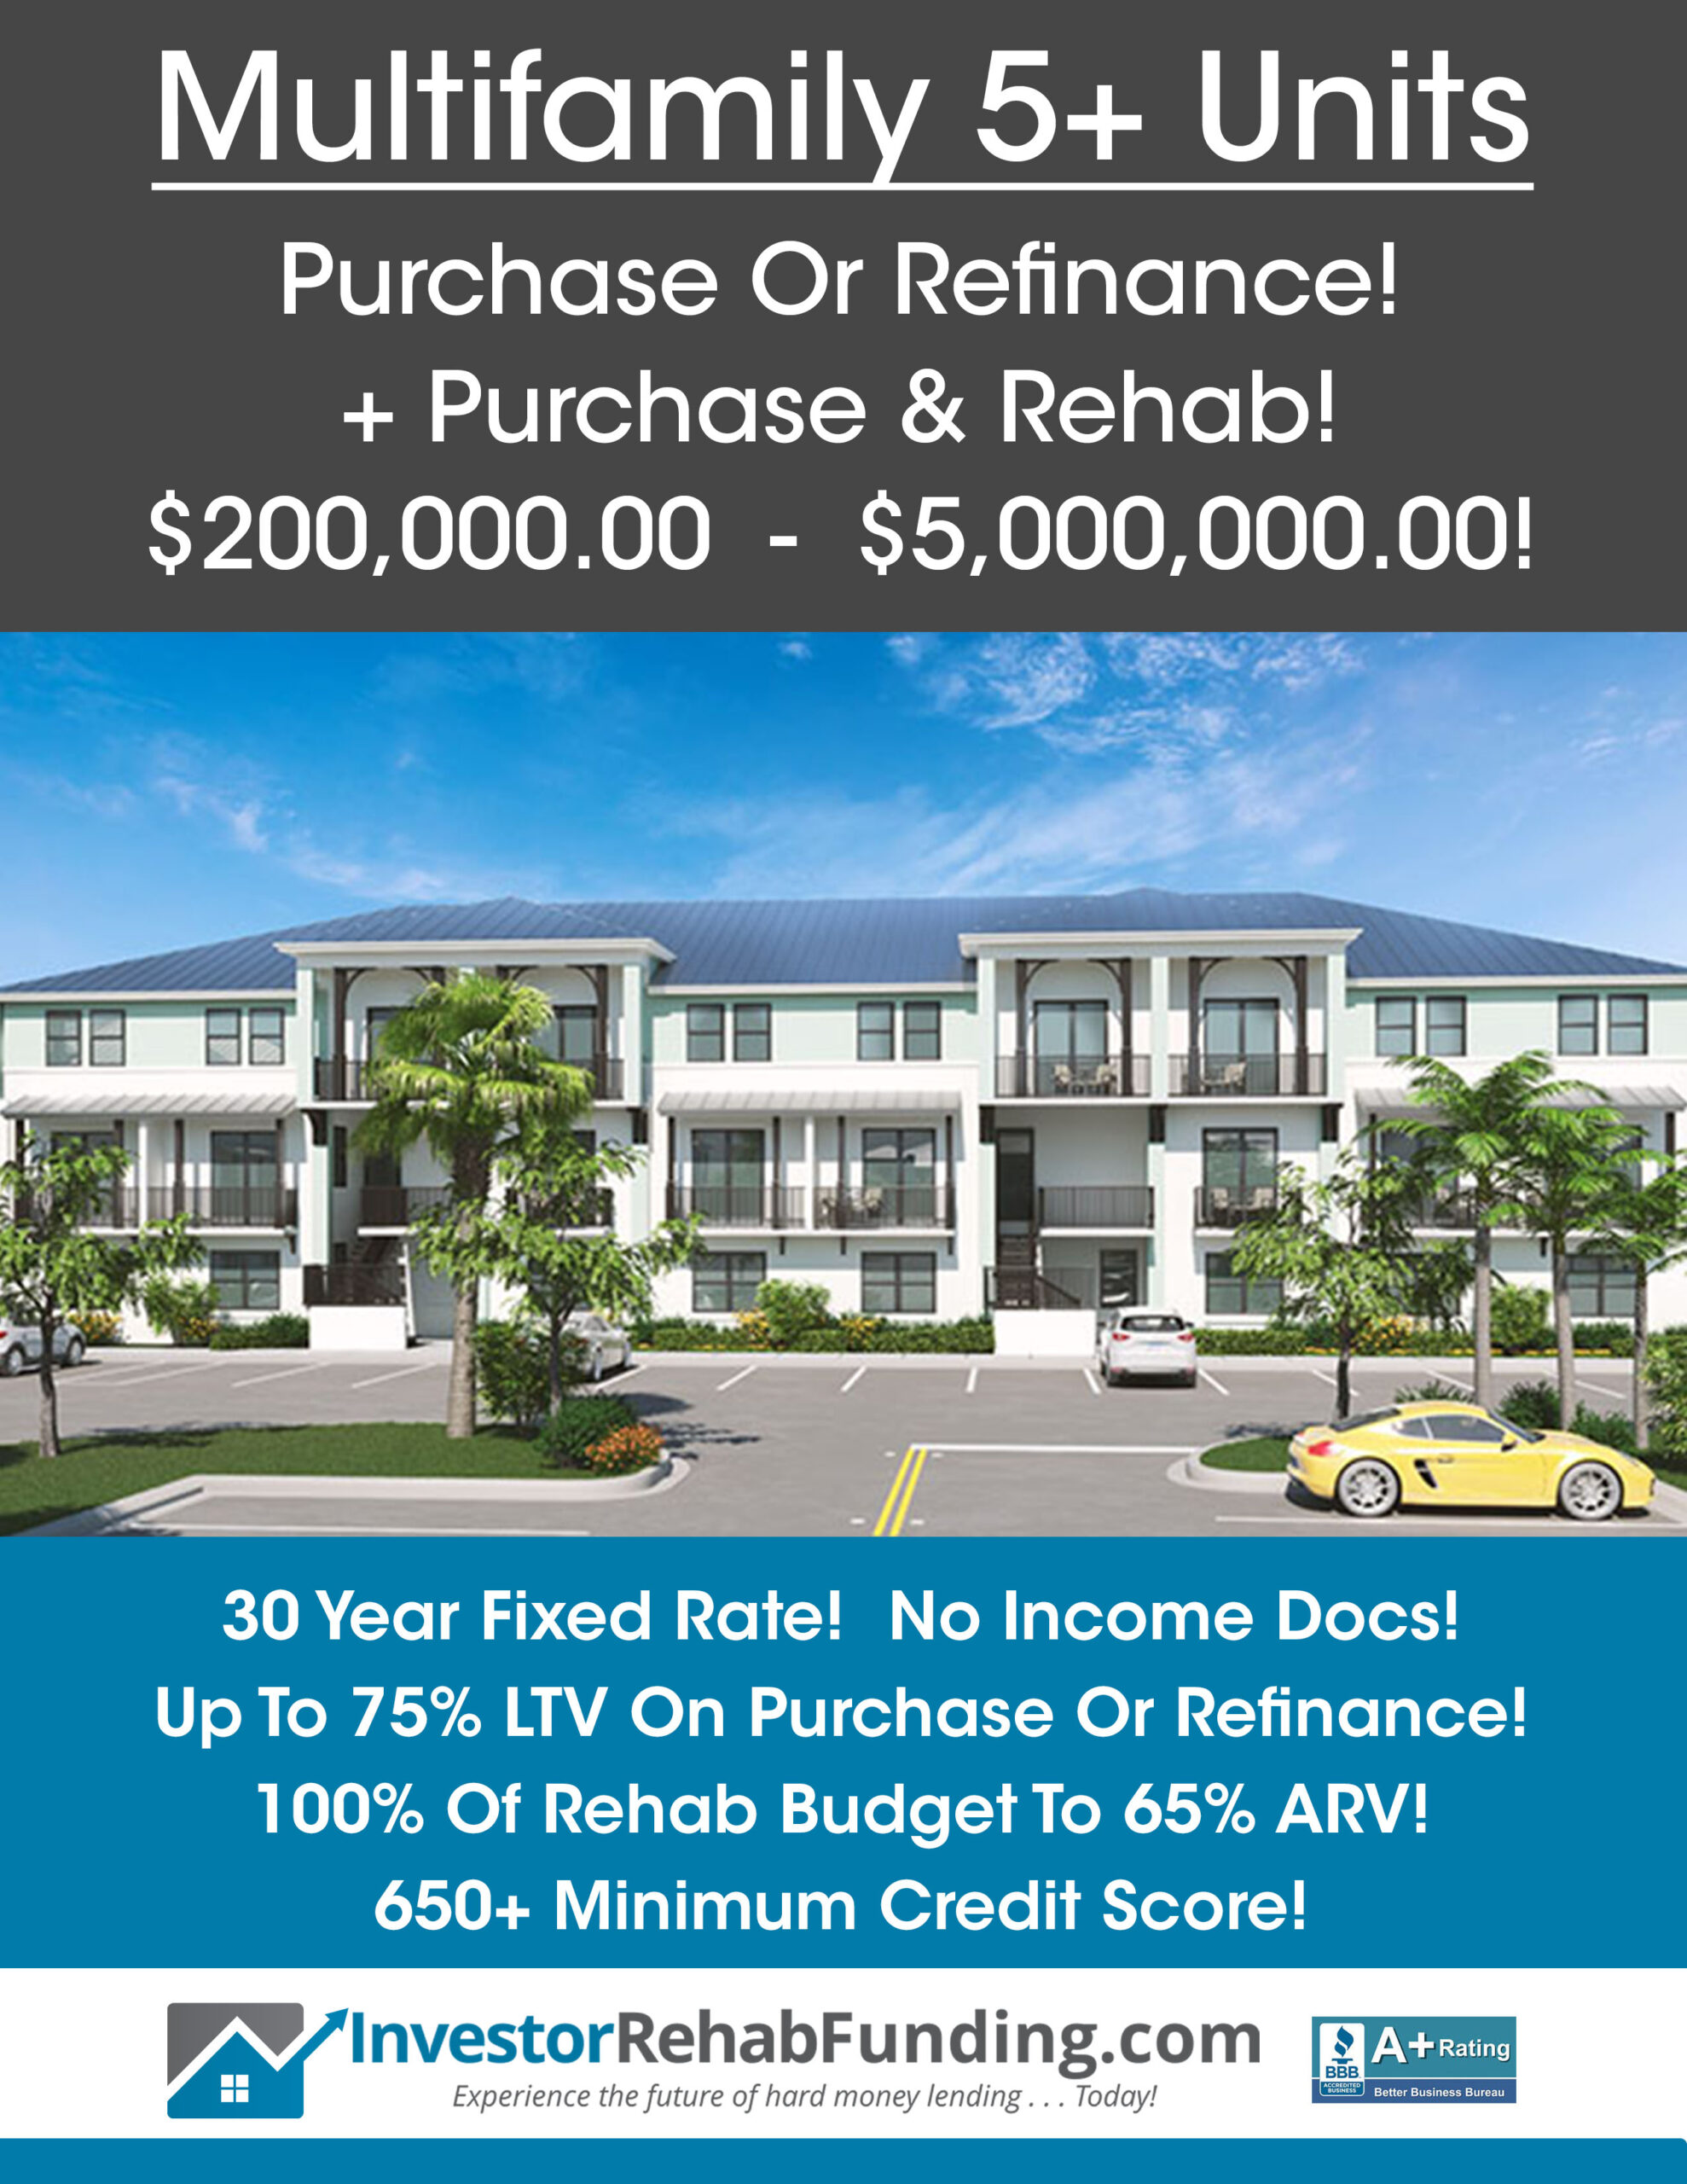 MULTIFAMILY 5+ UNITS – Purchase – Refinance – Purchase & Rehab To $5 Million!